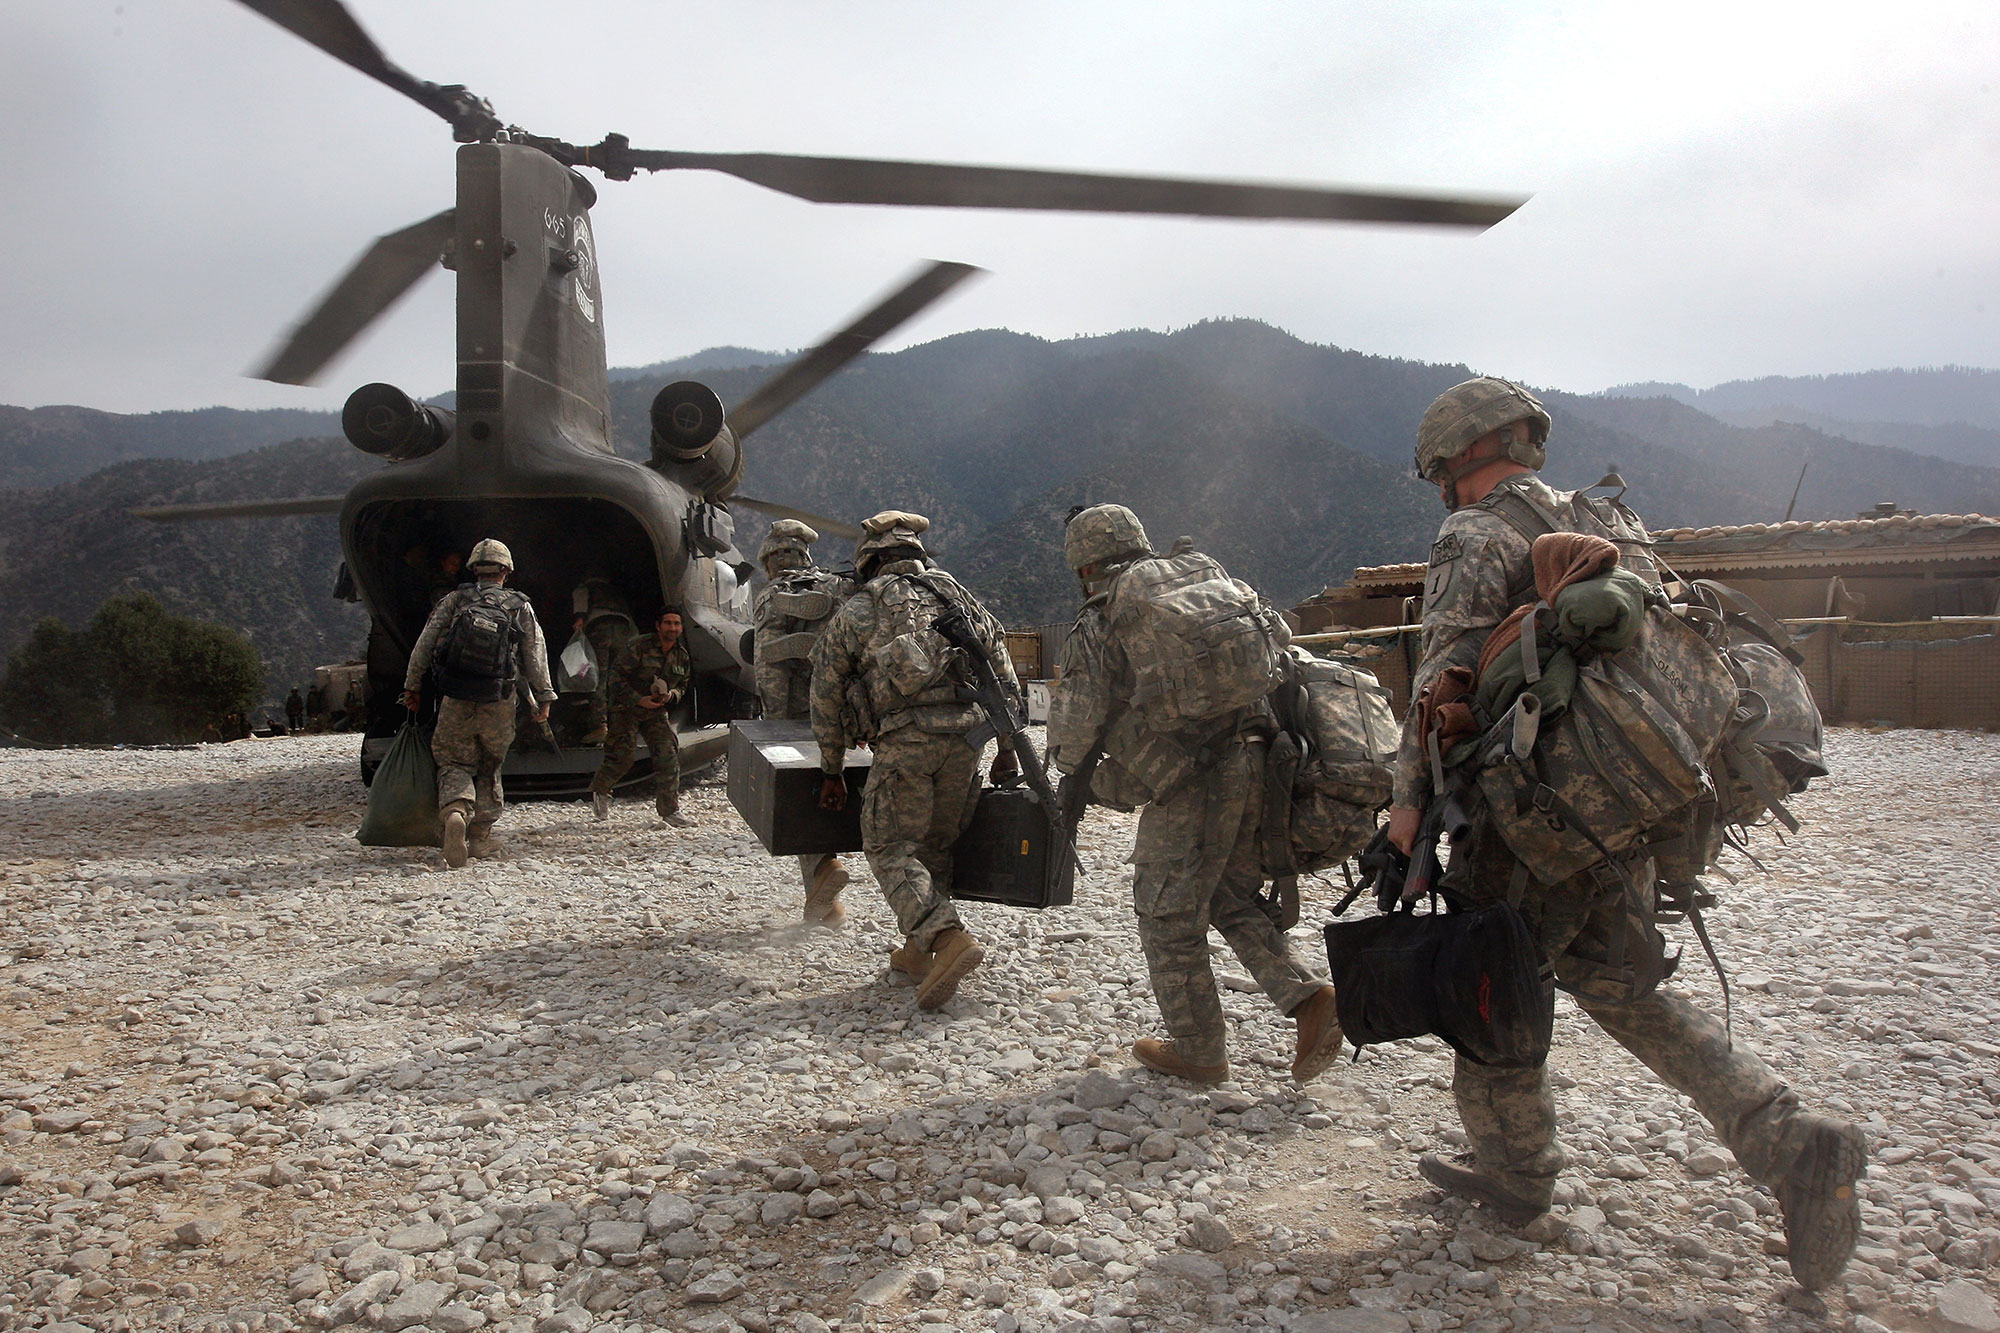 U.S. soldiers board an Army Chinook